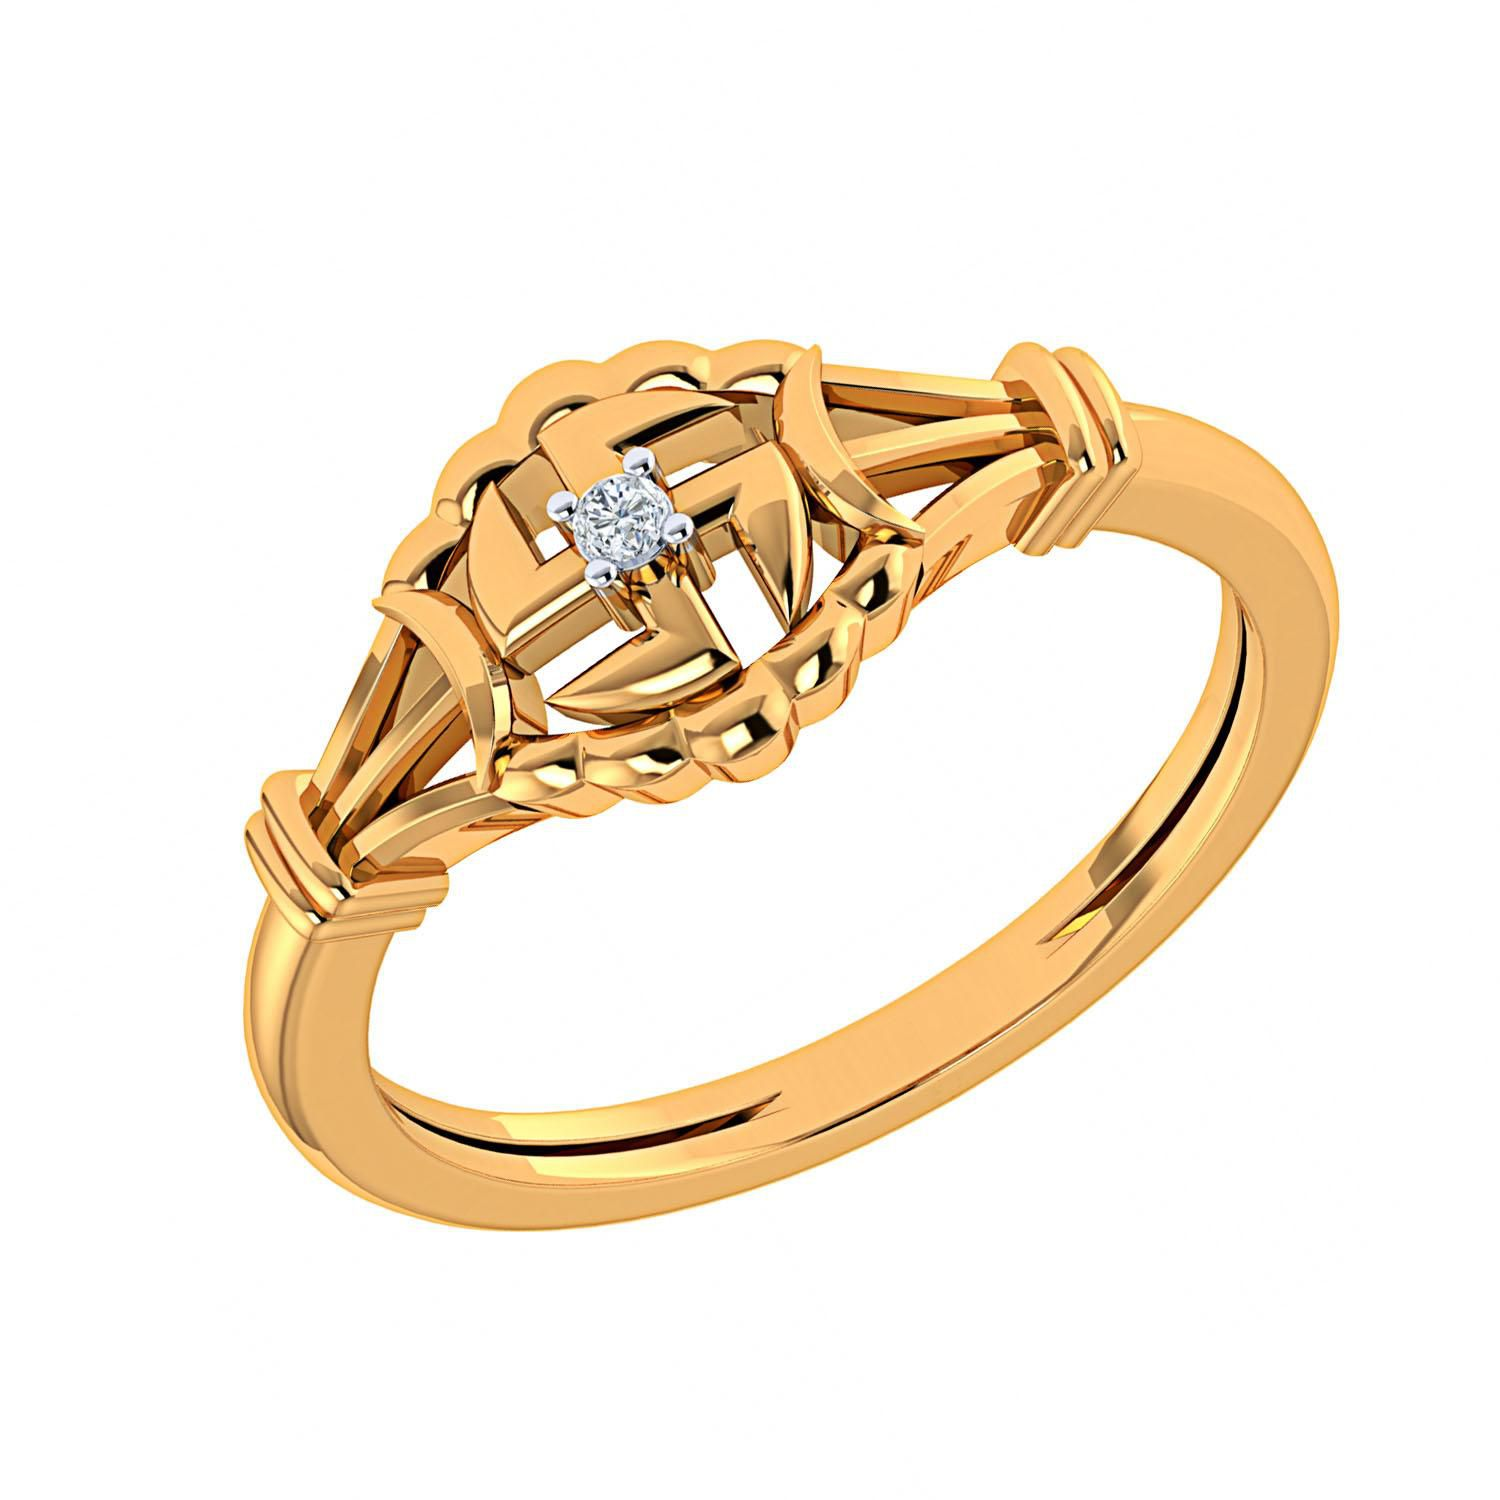 Me Jewels 18k Gold Ring